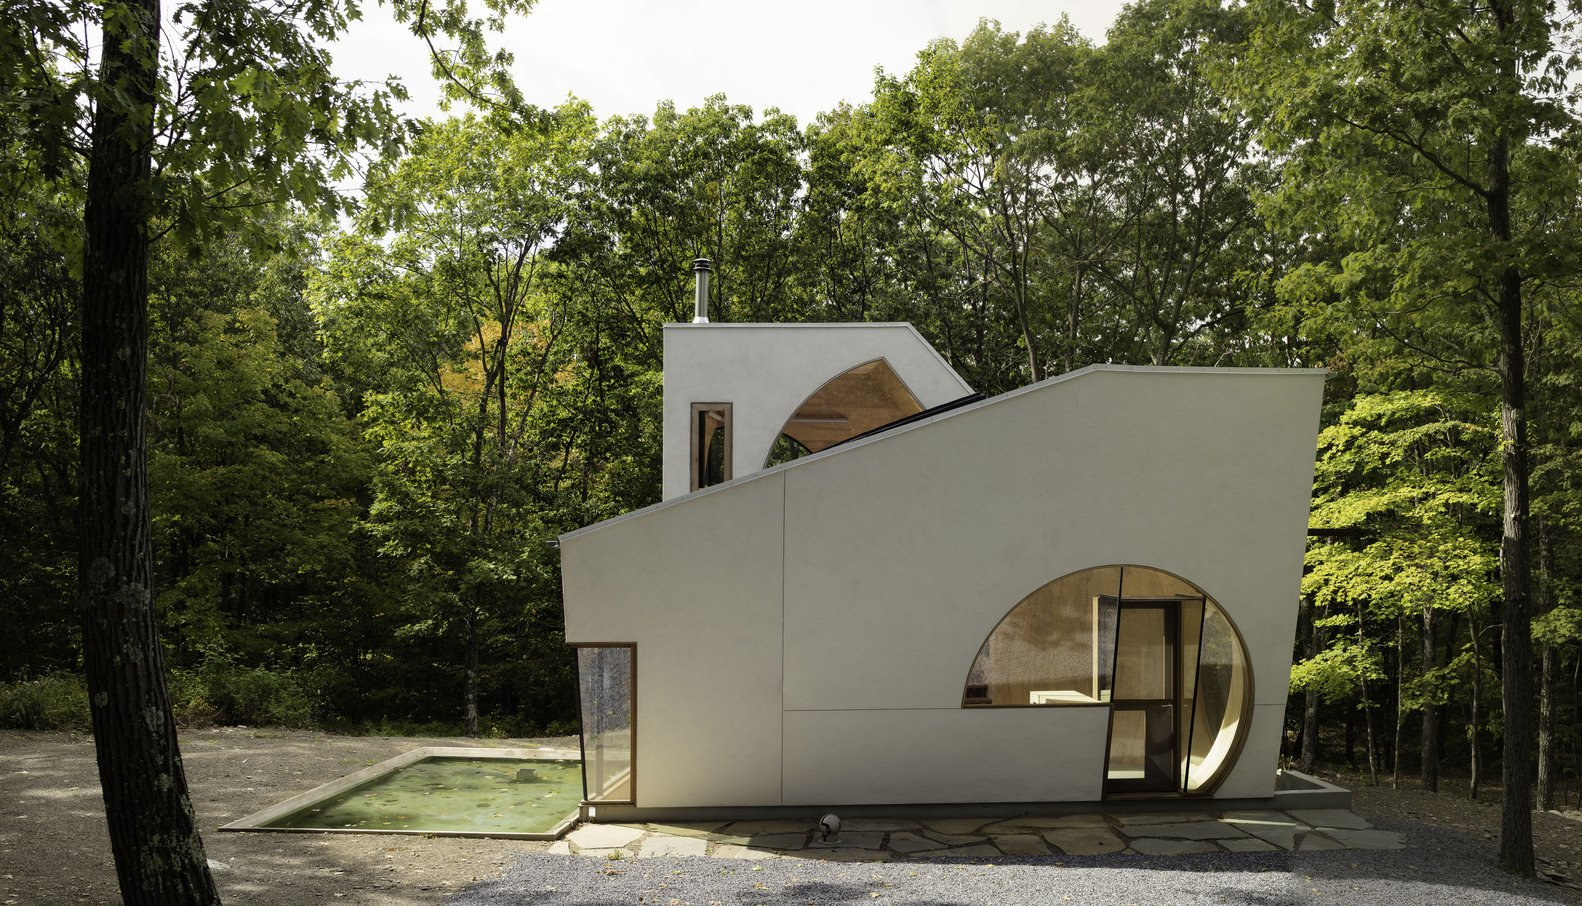 Via ArchDaily, photo by Paul Warchol  Photo 2 of 11 in This Week's 10 Best Houses